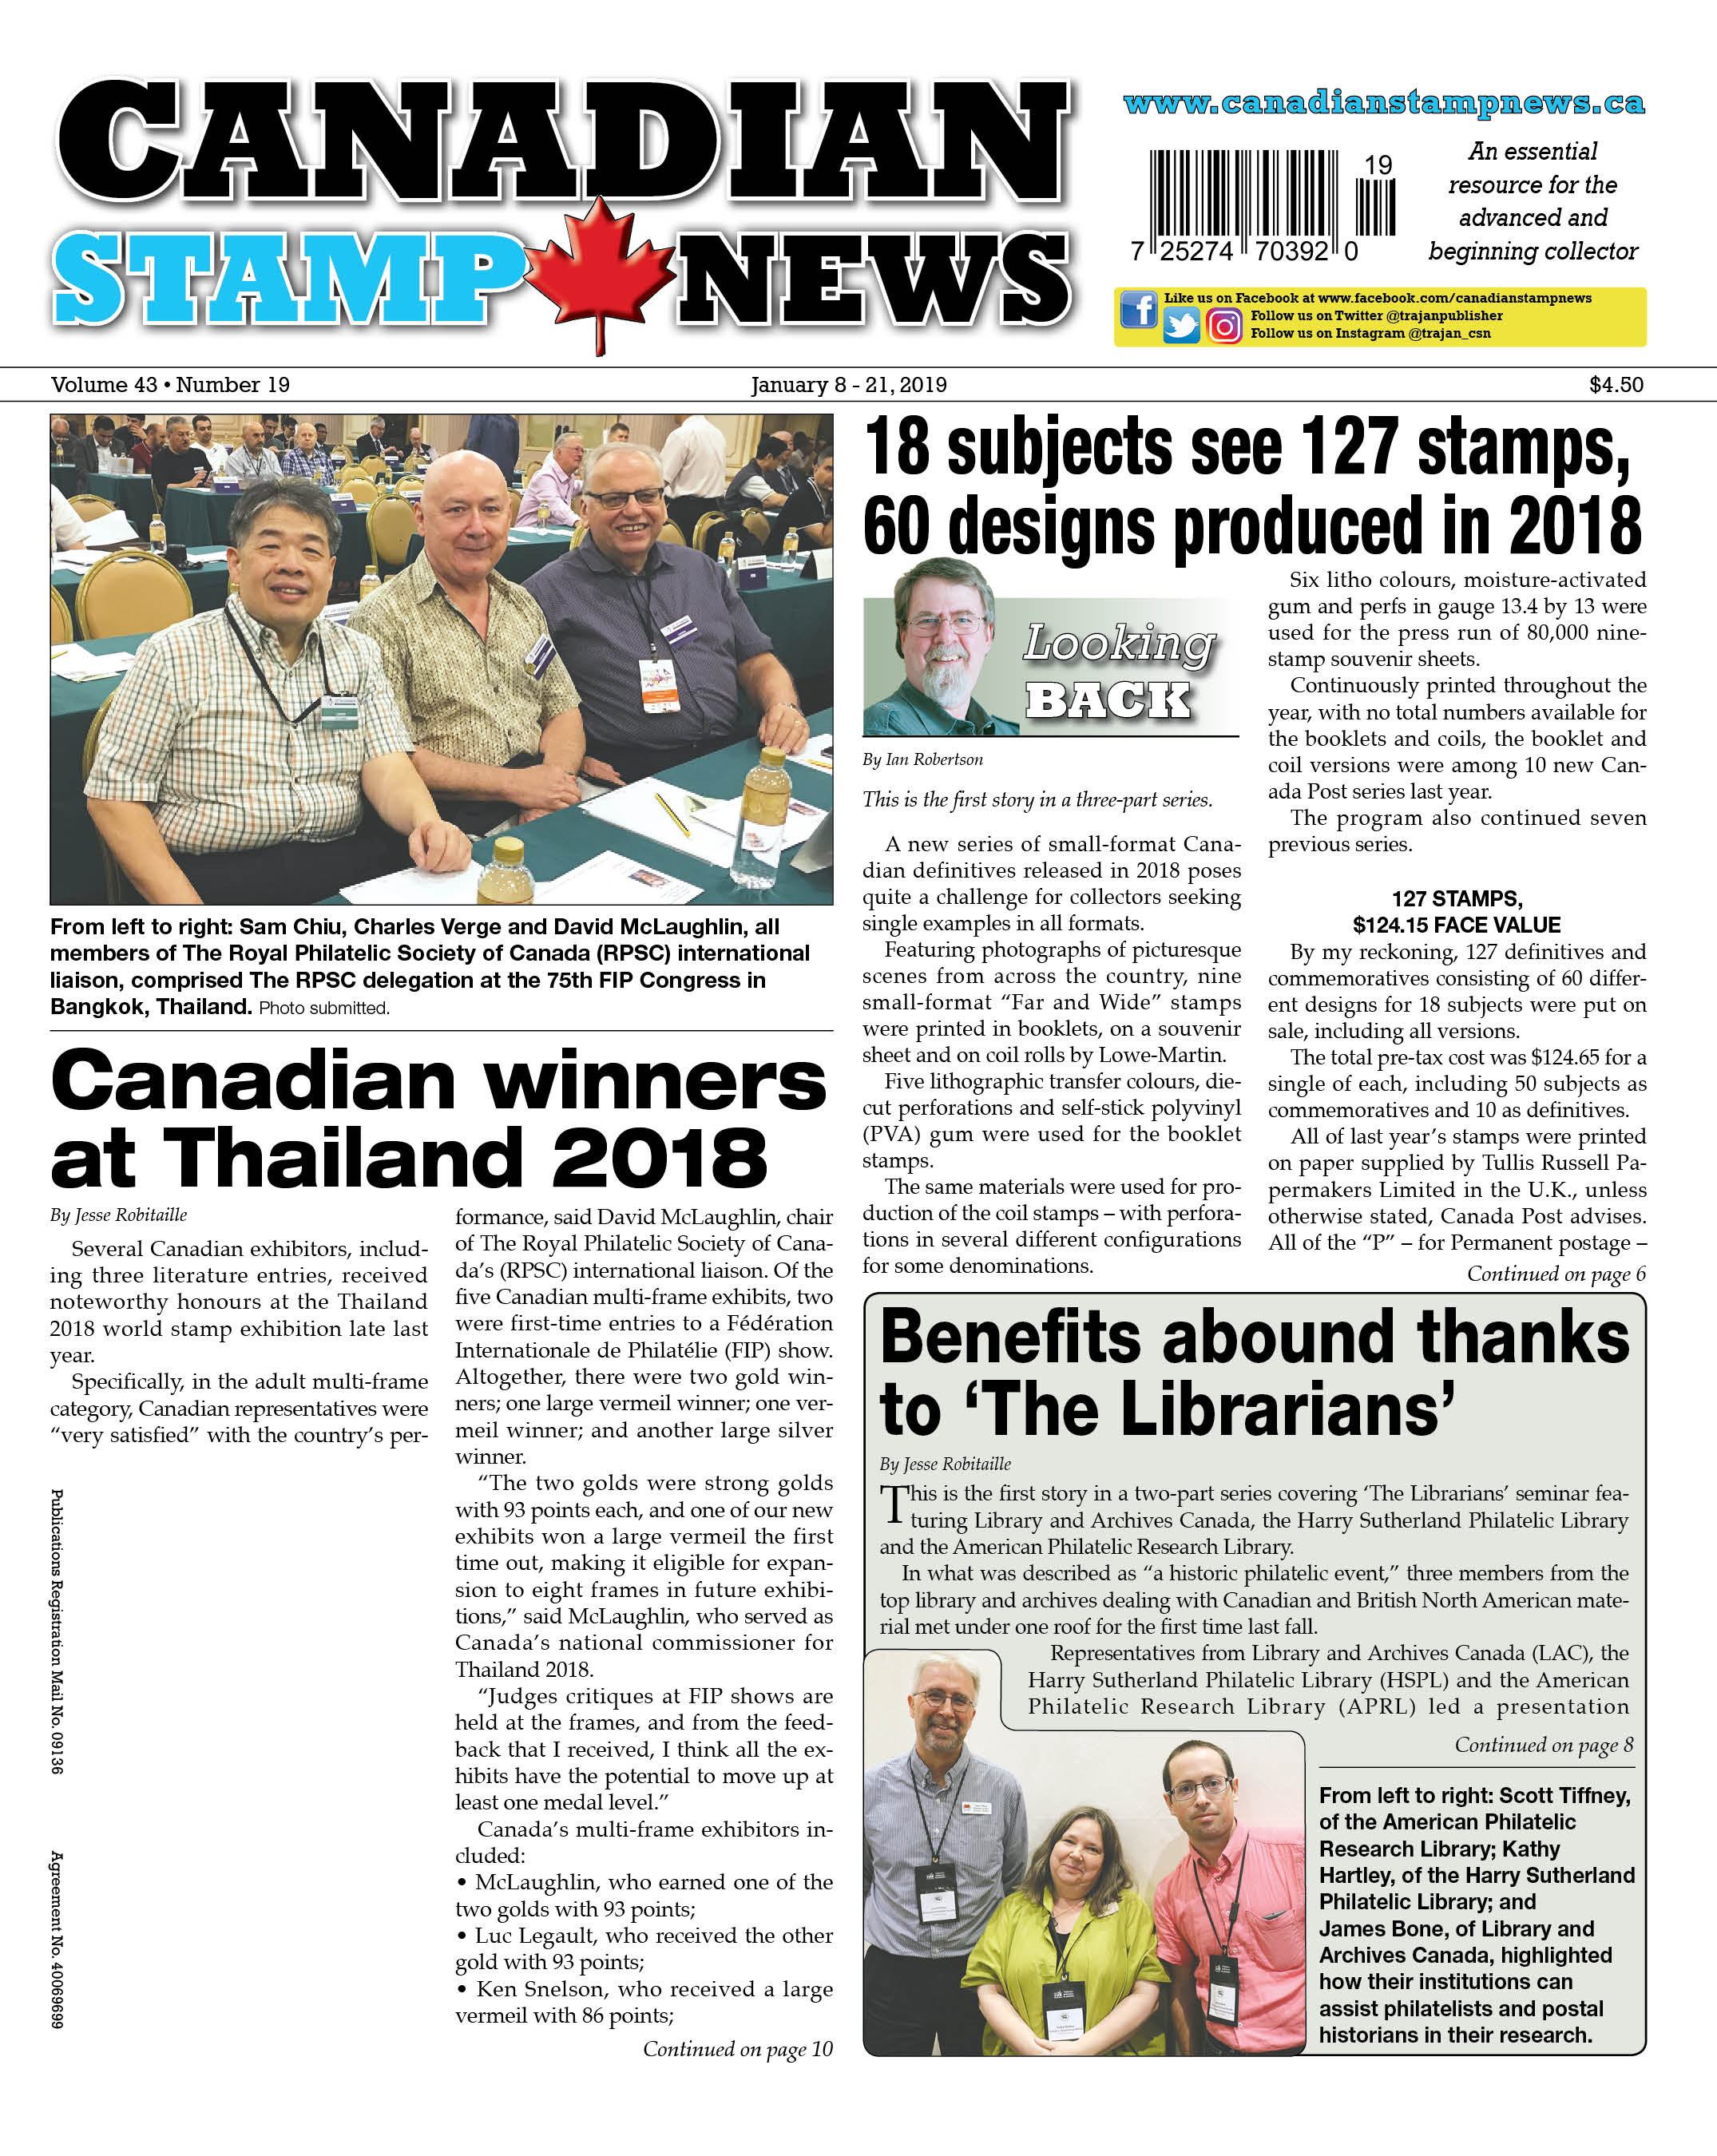 CSNV43#19-Jan8 19Cover - Canadian Stamp News